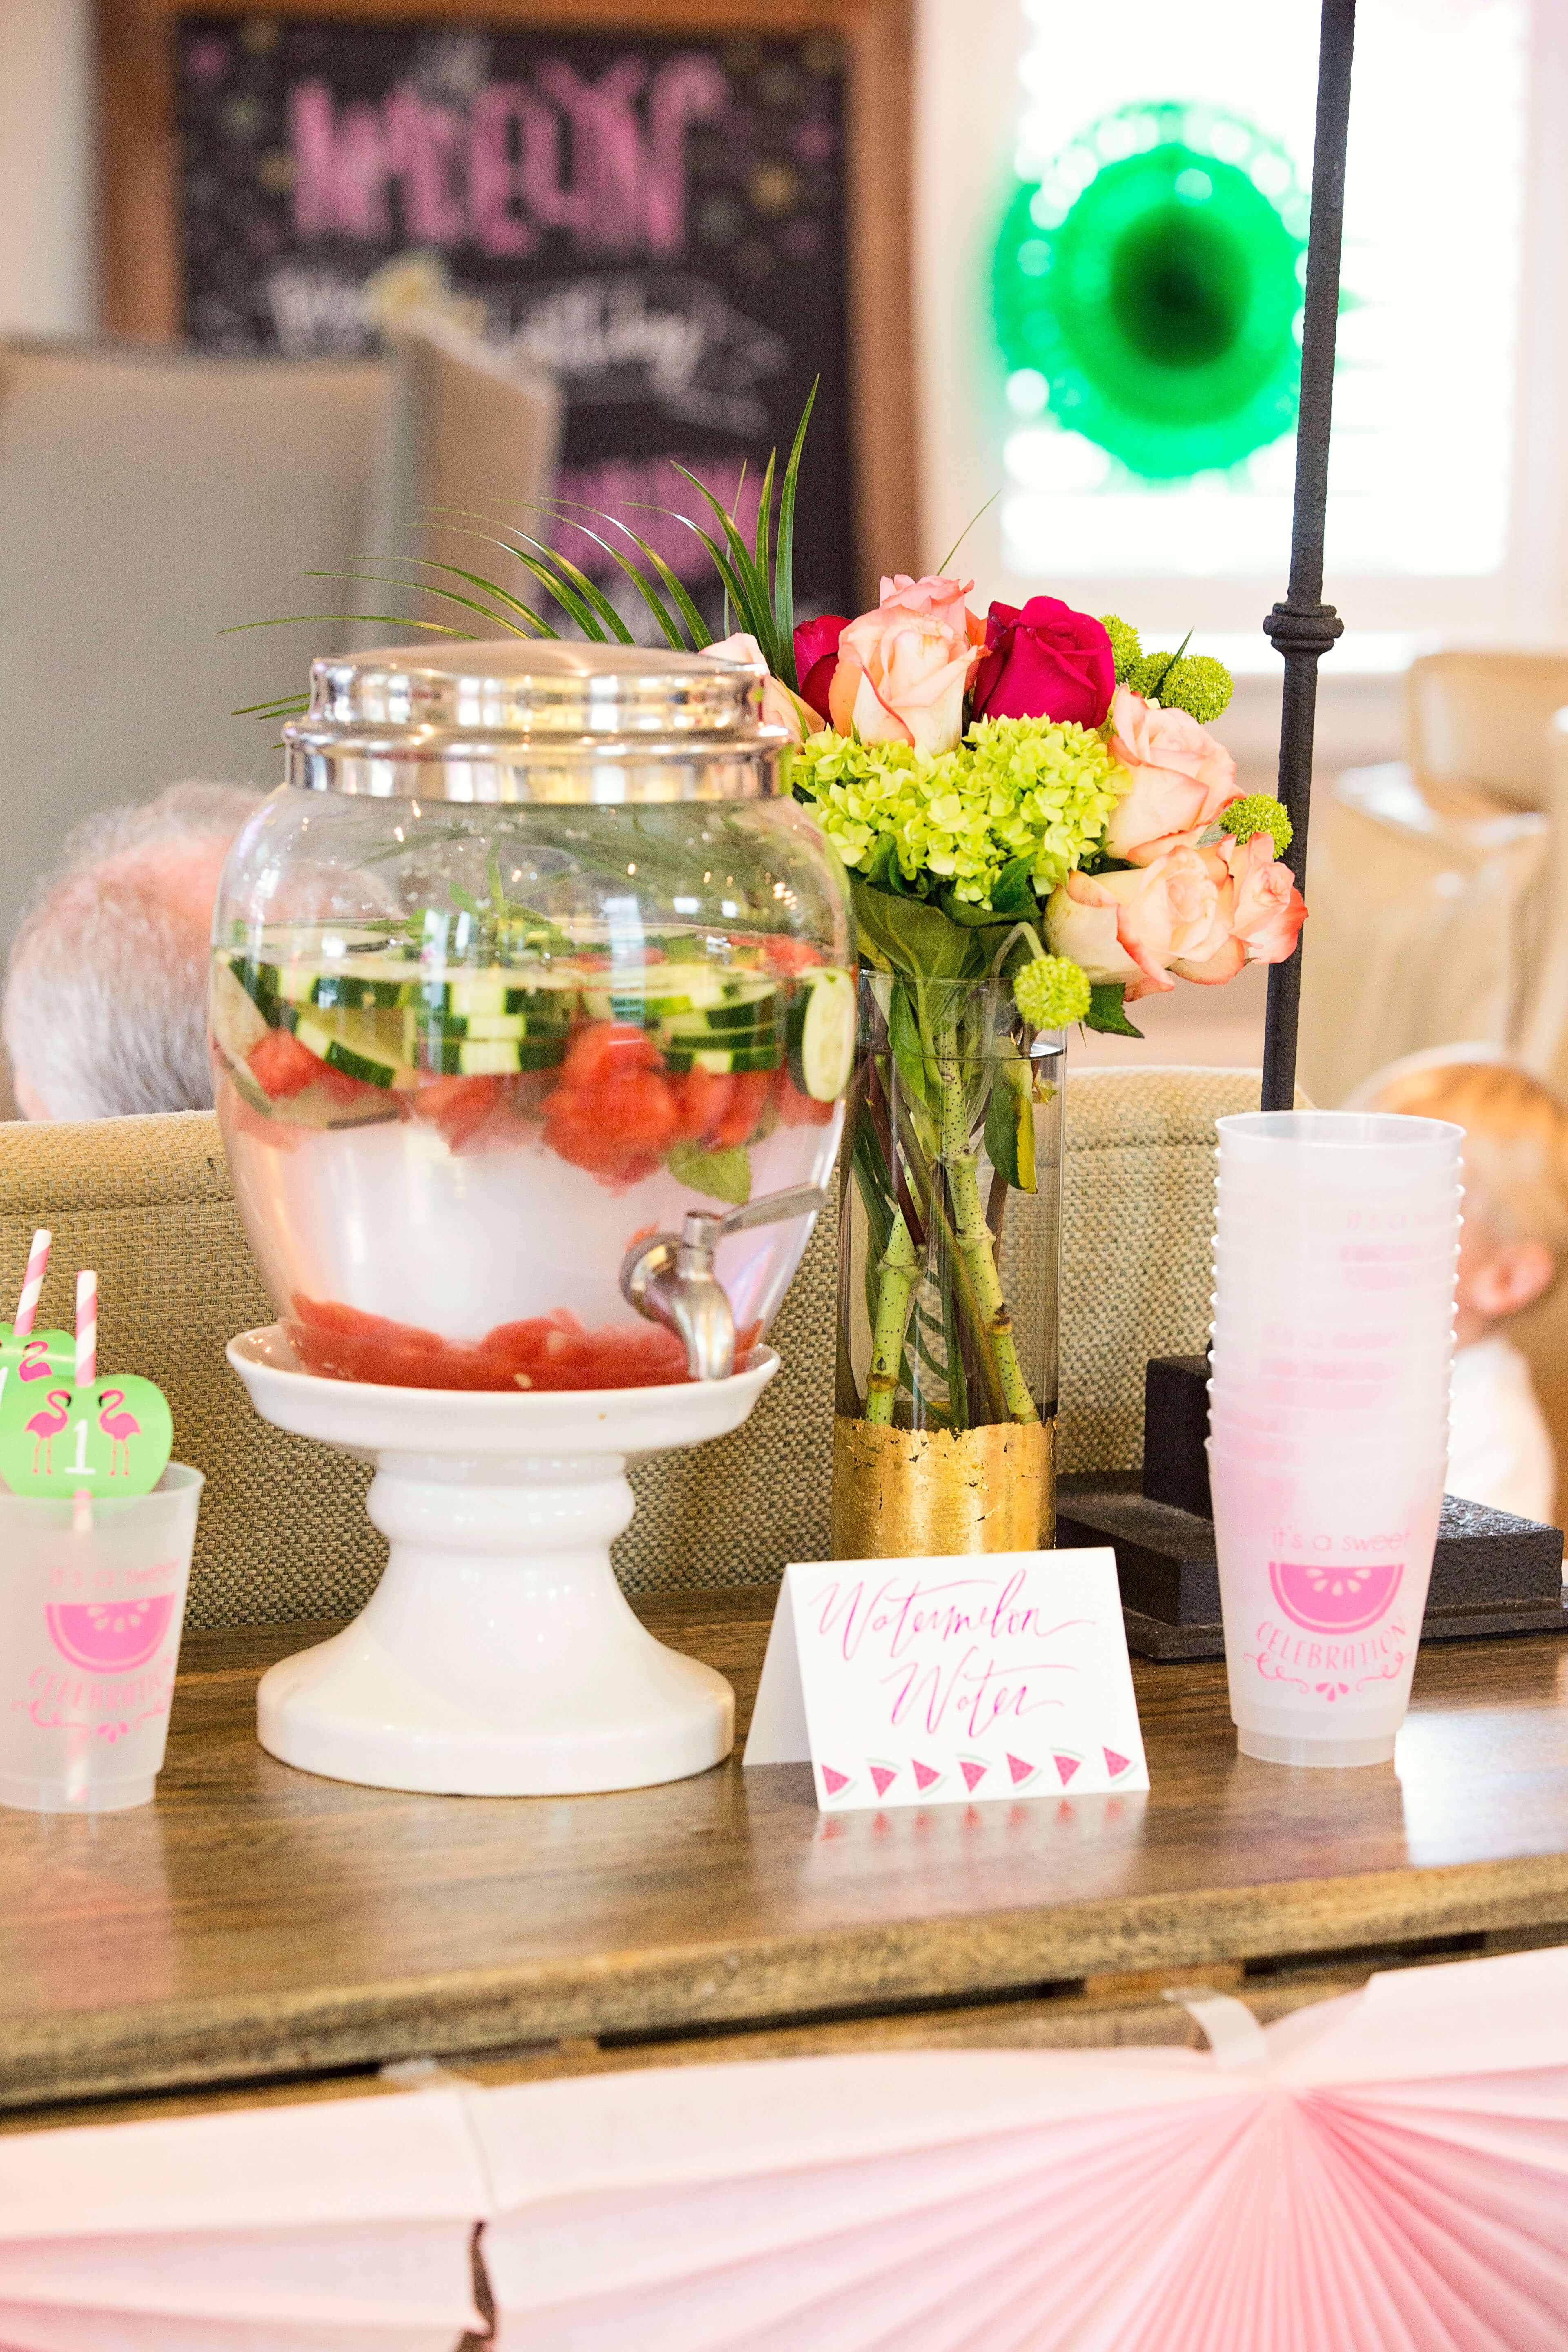 Baby flamingo car interior design - Madelyn S Party Shoes Even Matched Her Party Theme We Absolutely Love How This Preppy Flamingo Watermelon Birthday Turned Out